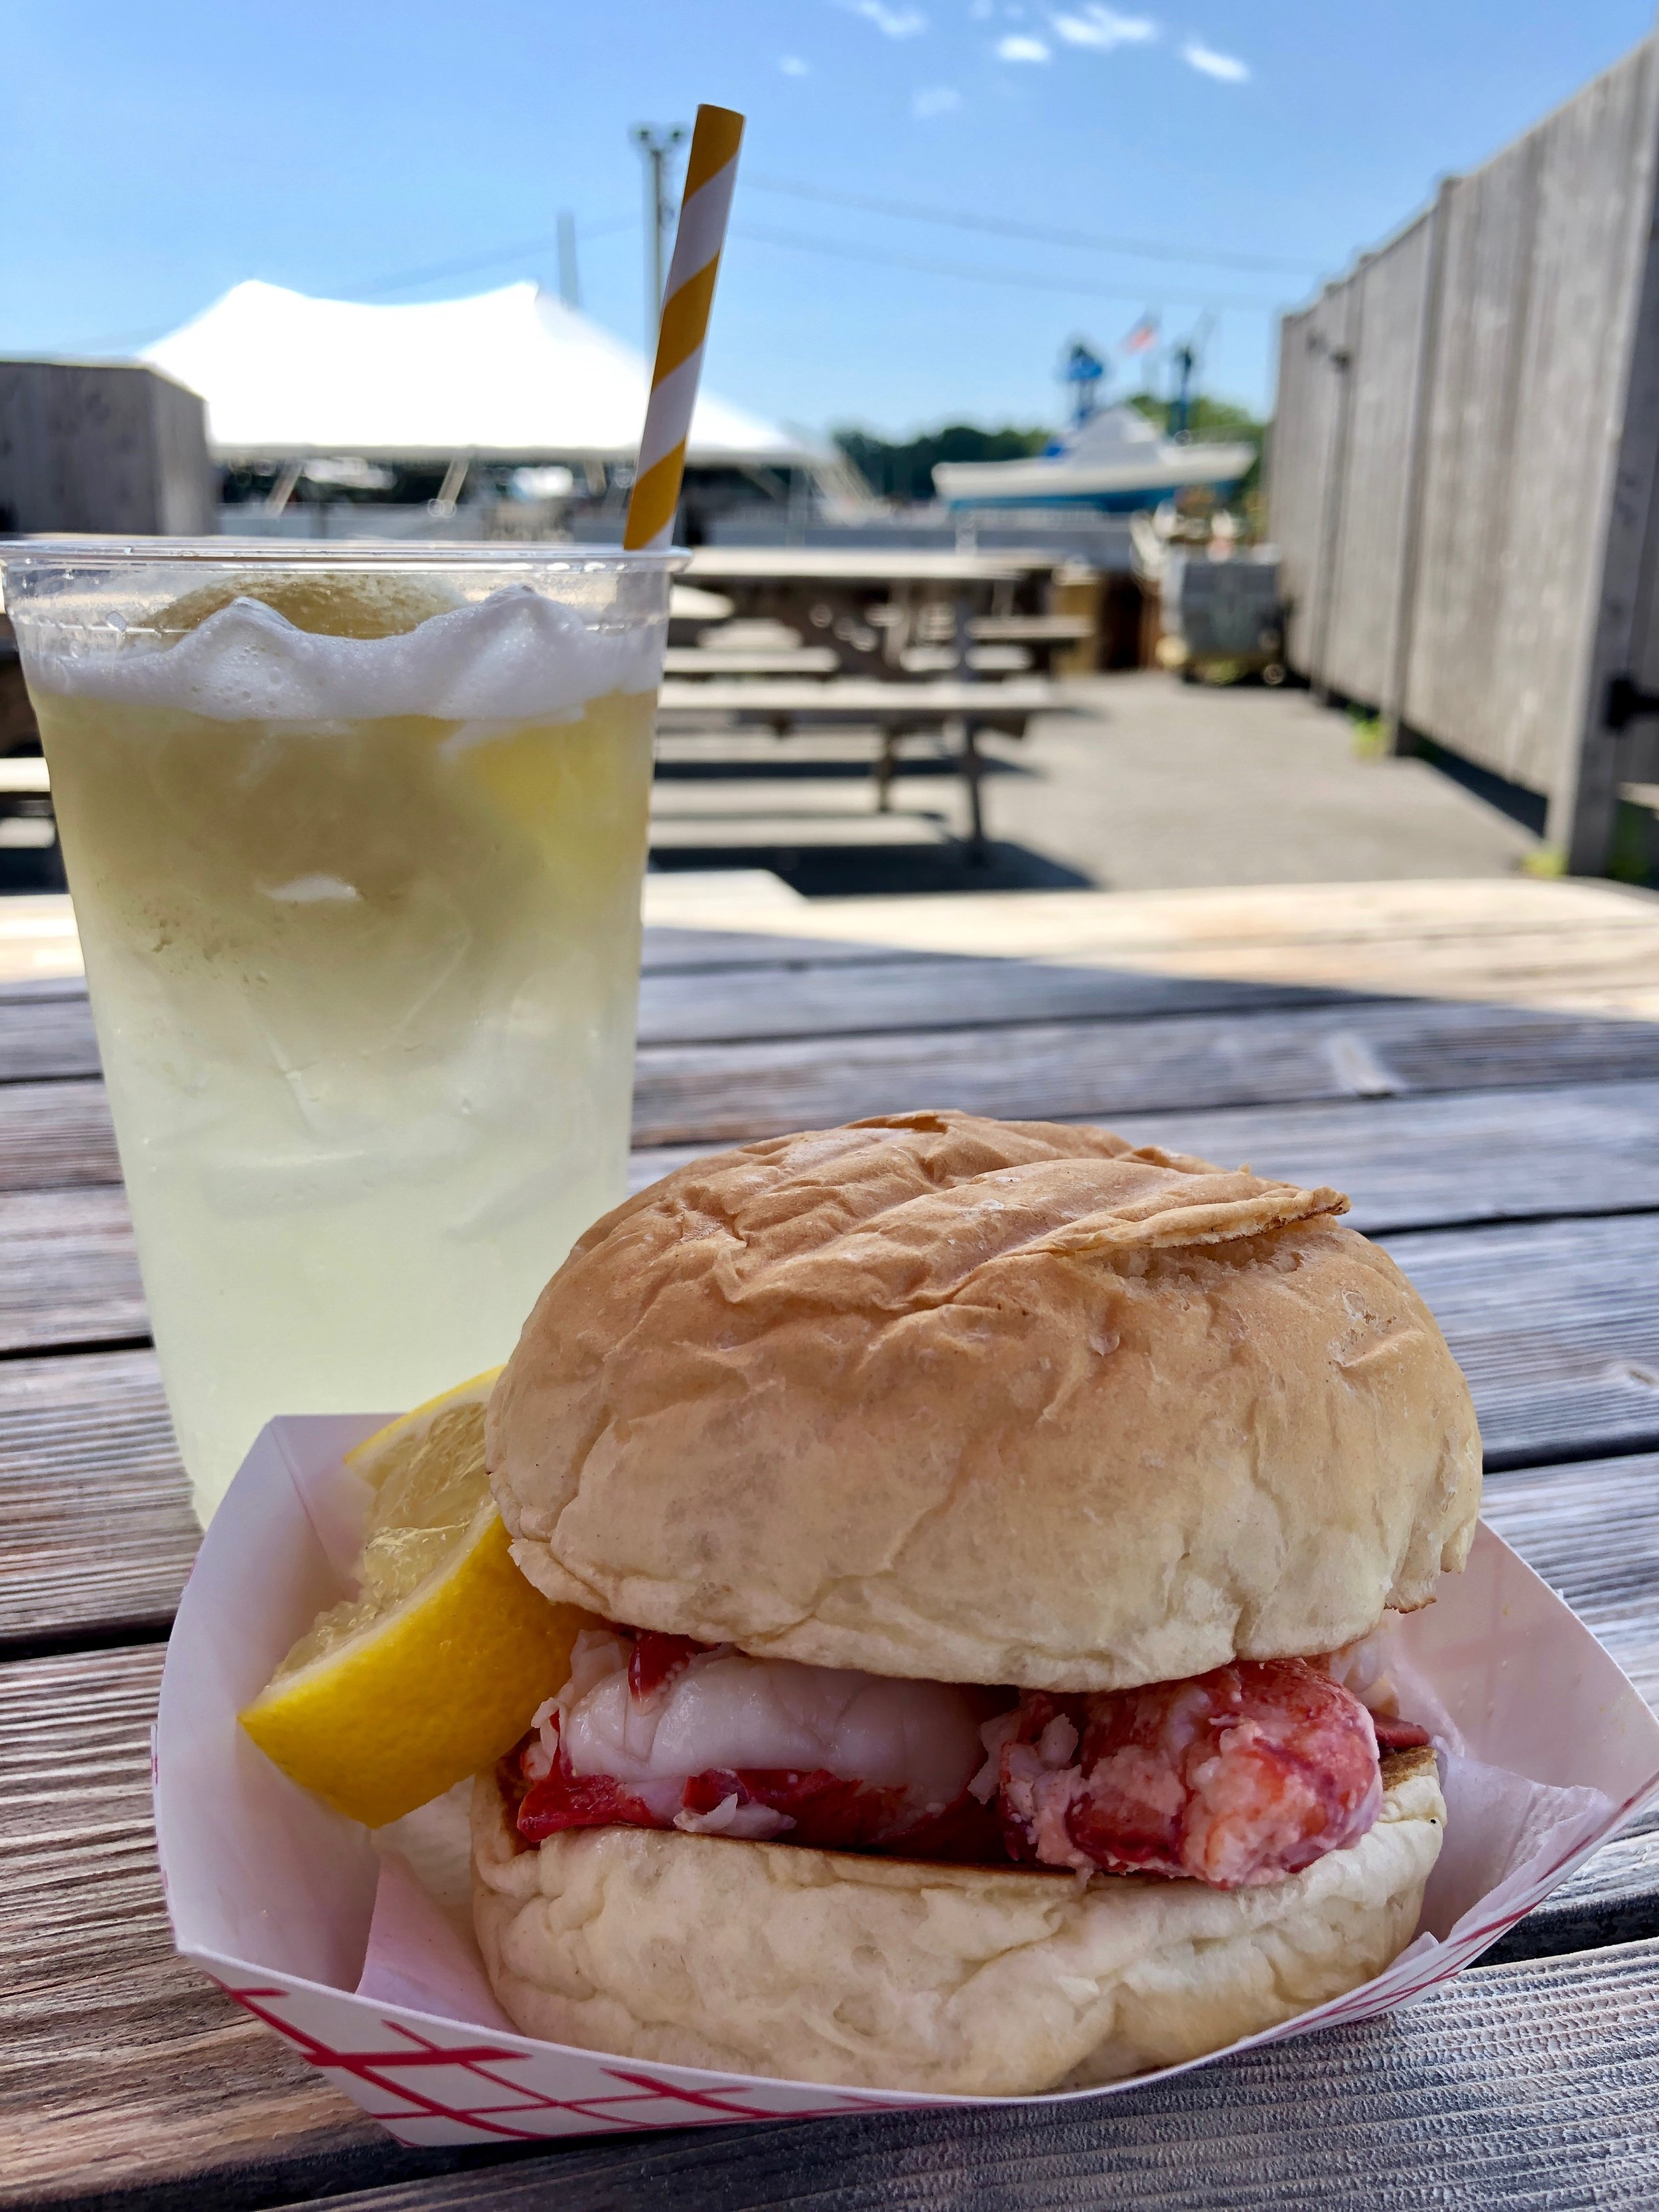 A common grace found in Kennebunk, Maine: The MOST delicious lobster roll I've ever eaten + fresh squeezed lemonade. I will never forget this meal.